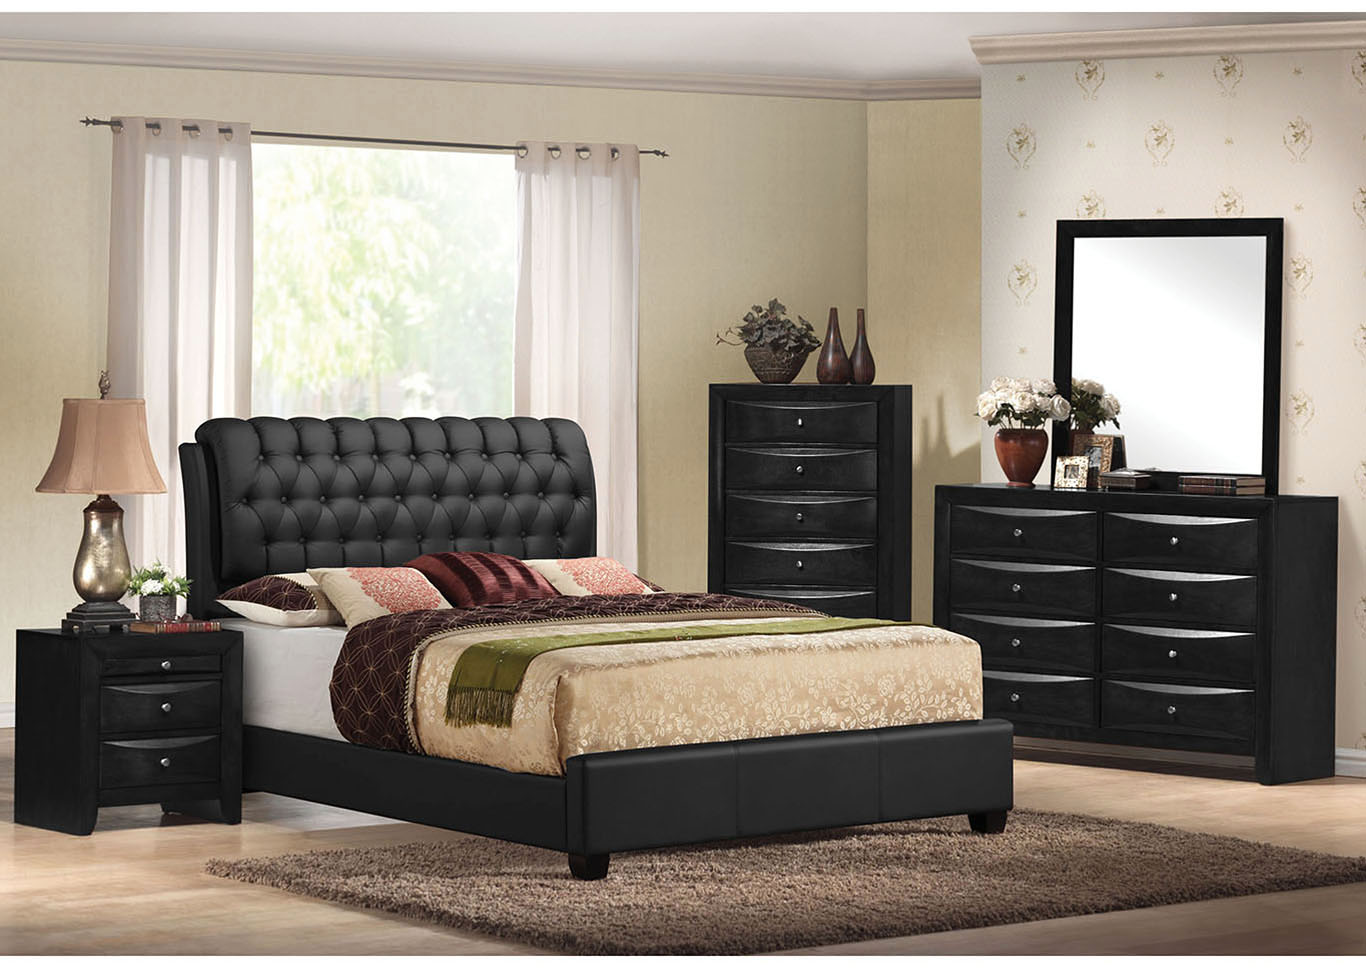 Ireland II Black Upholstered Eastern King Bed w/Dresser and Mirror,Acme